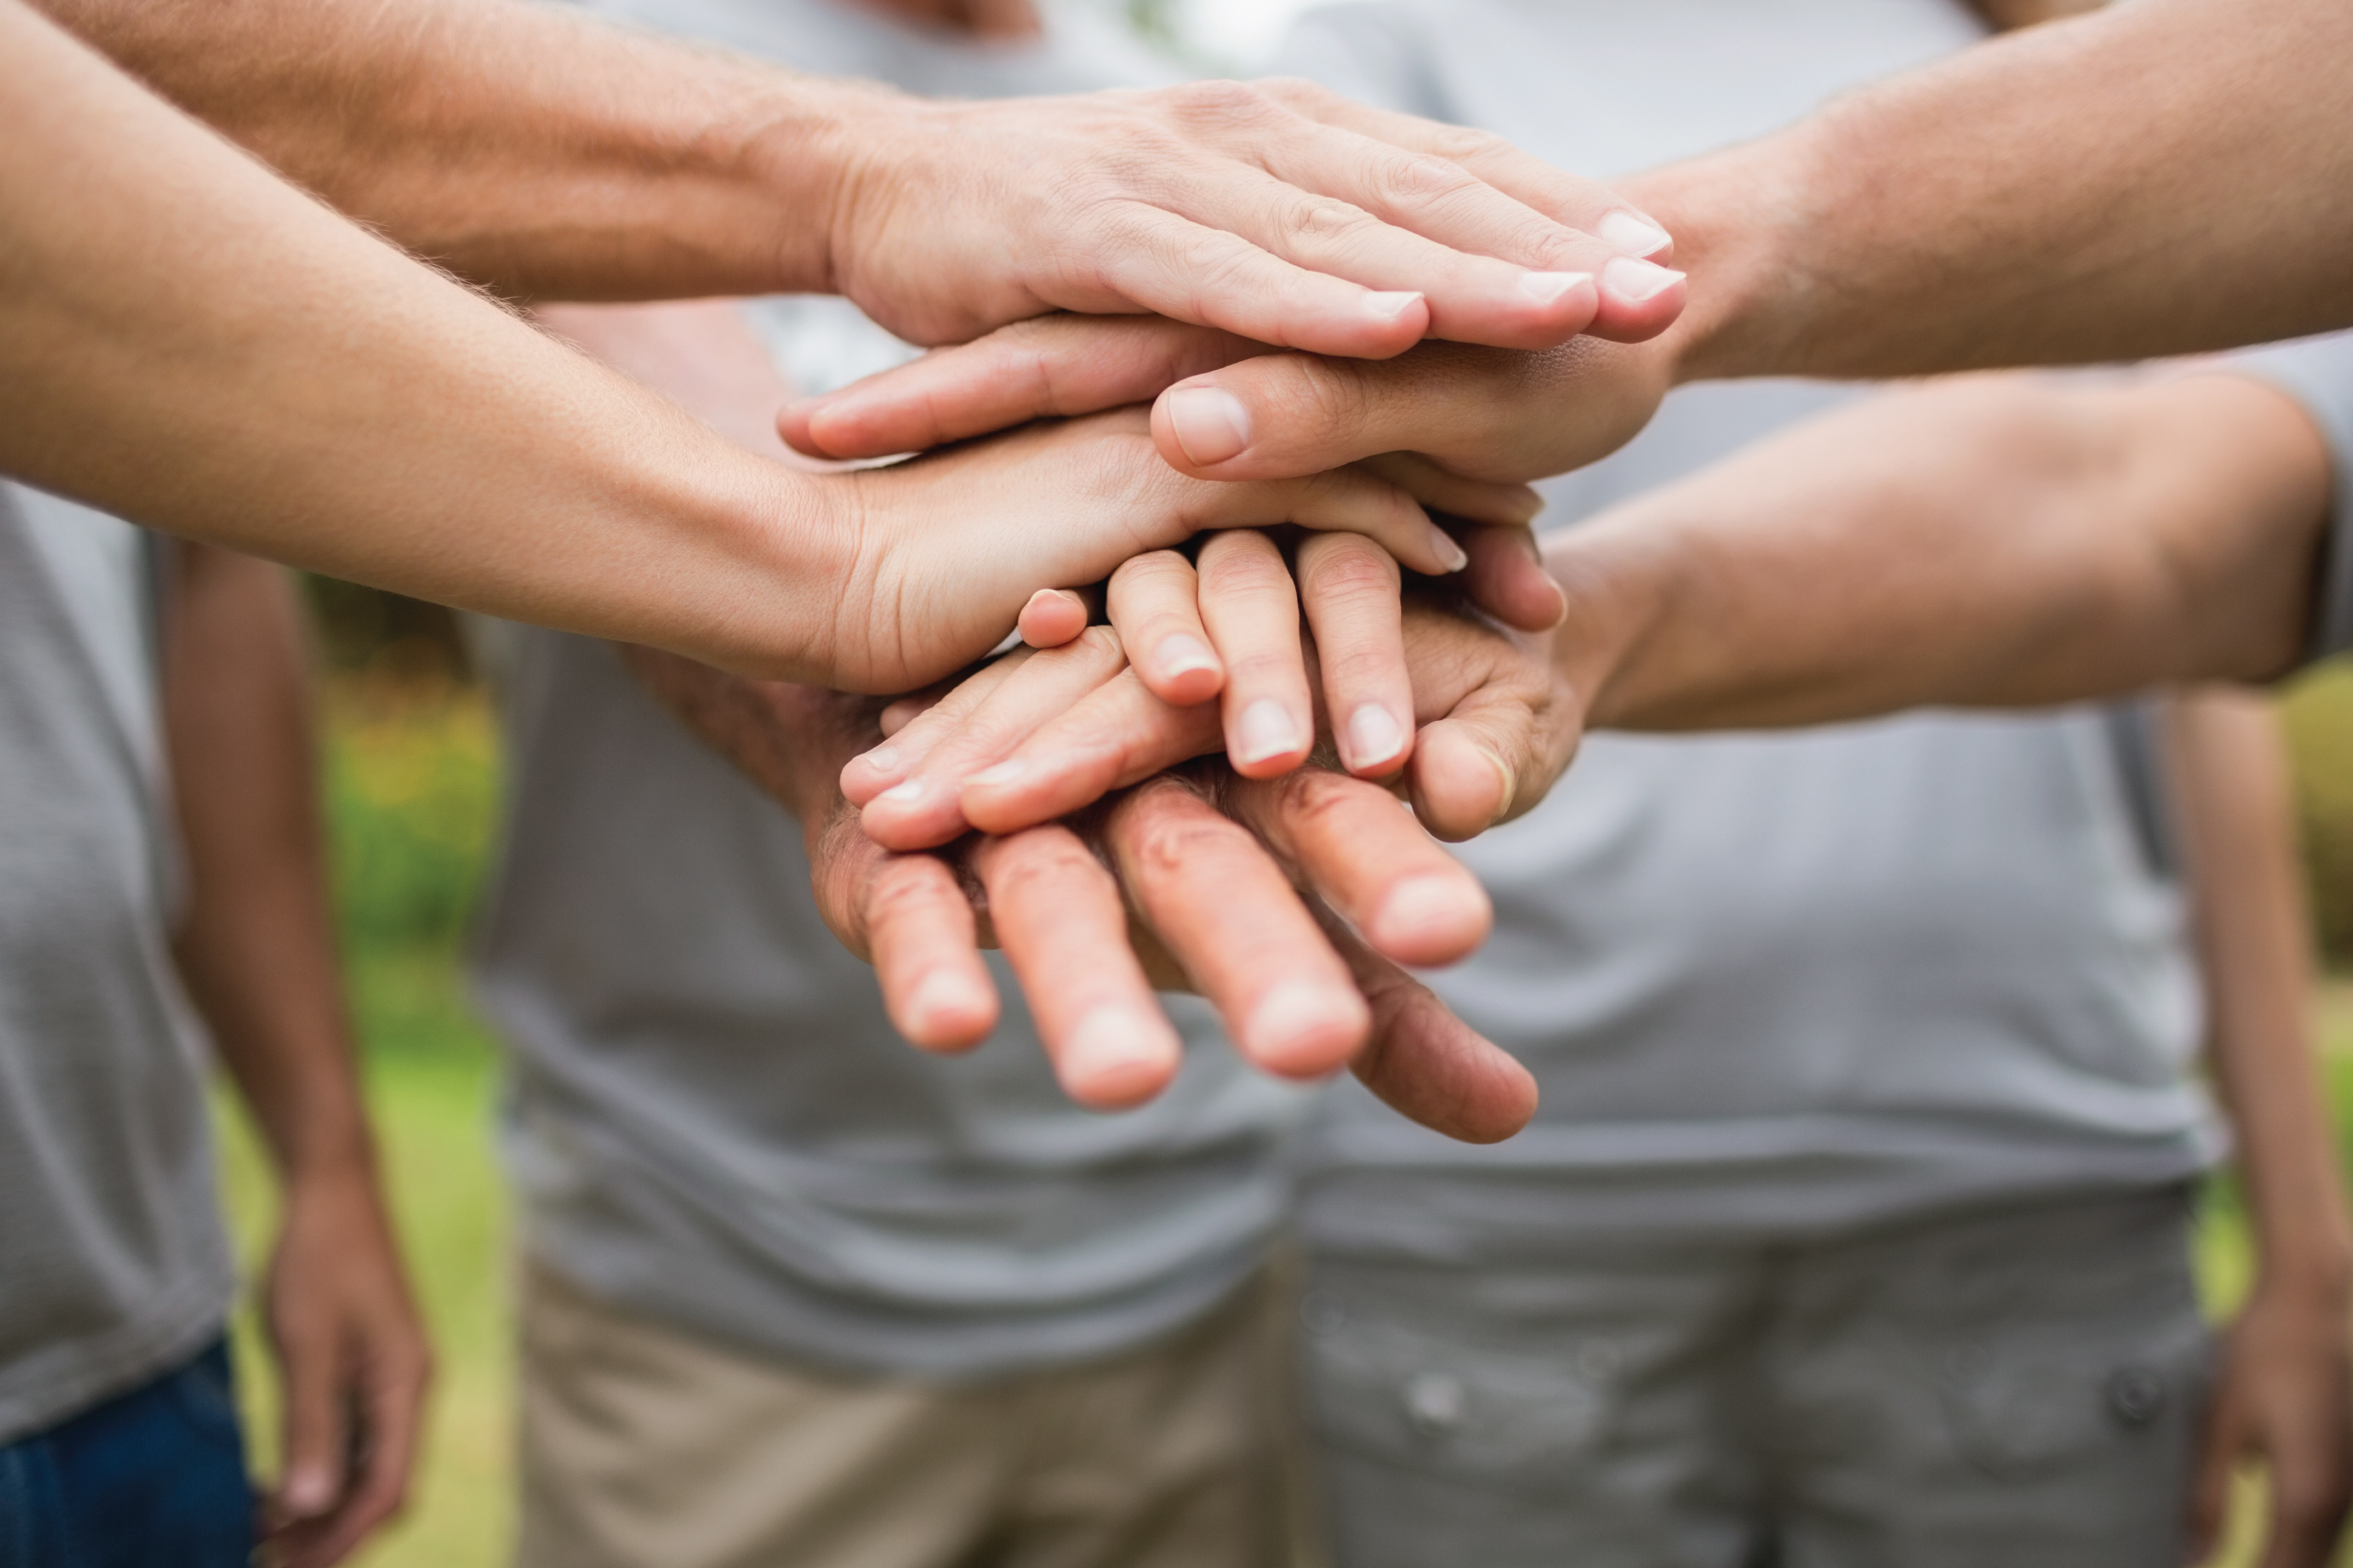 people putting their hands together in a huddle to show teamwork